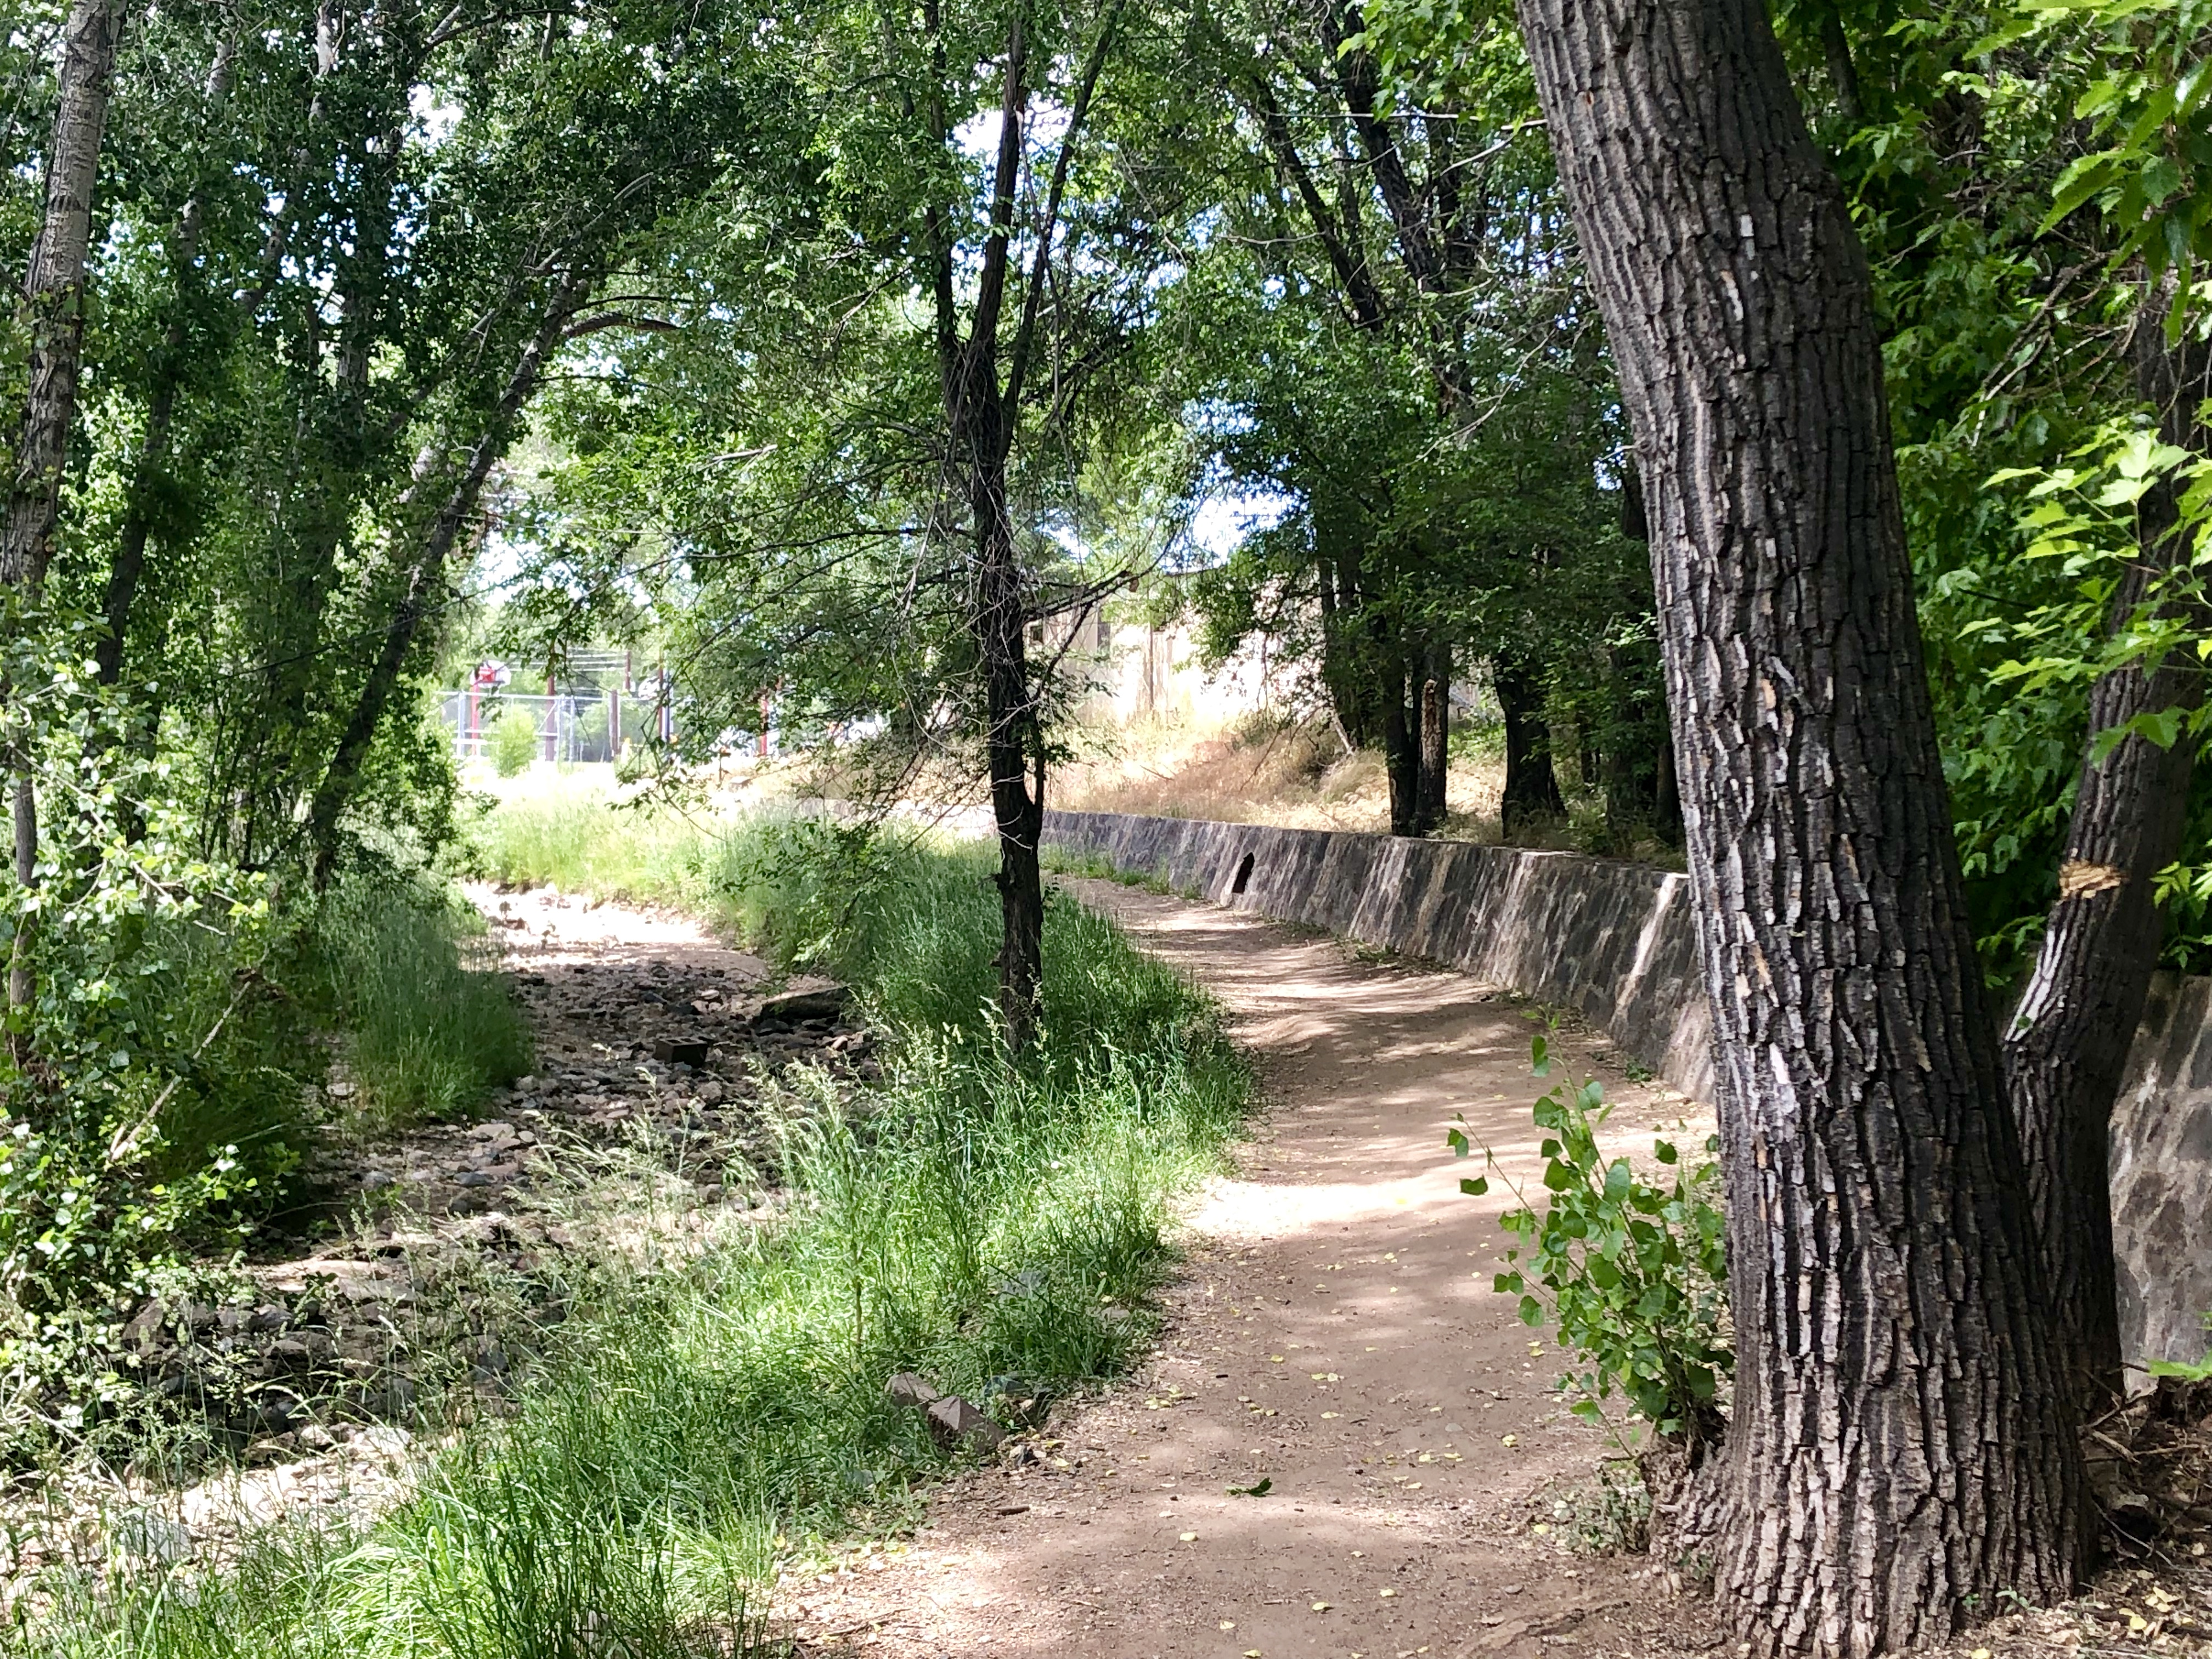 Public to weigh in on revitalization plan for Granite Creek